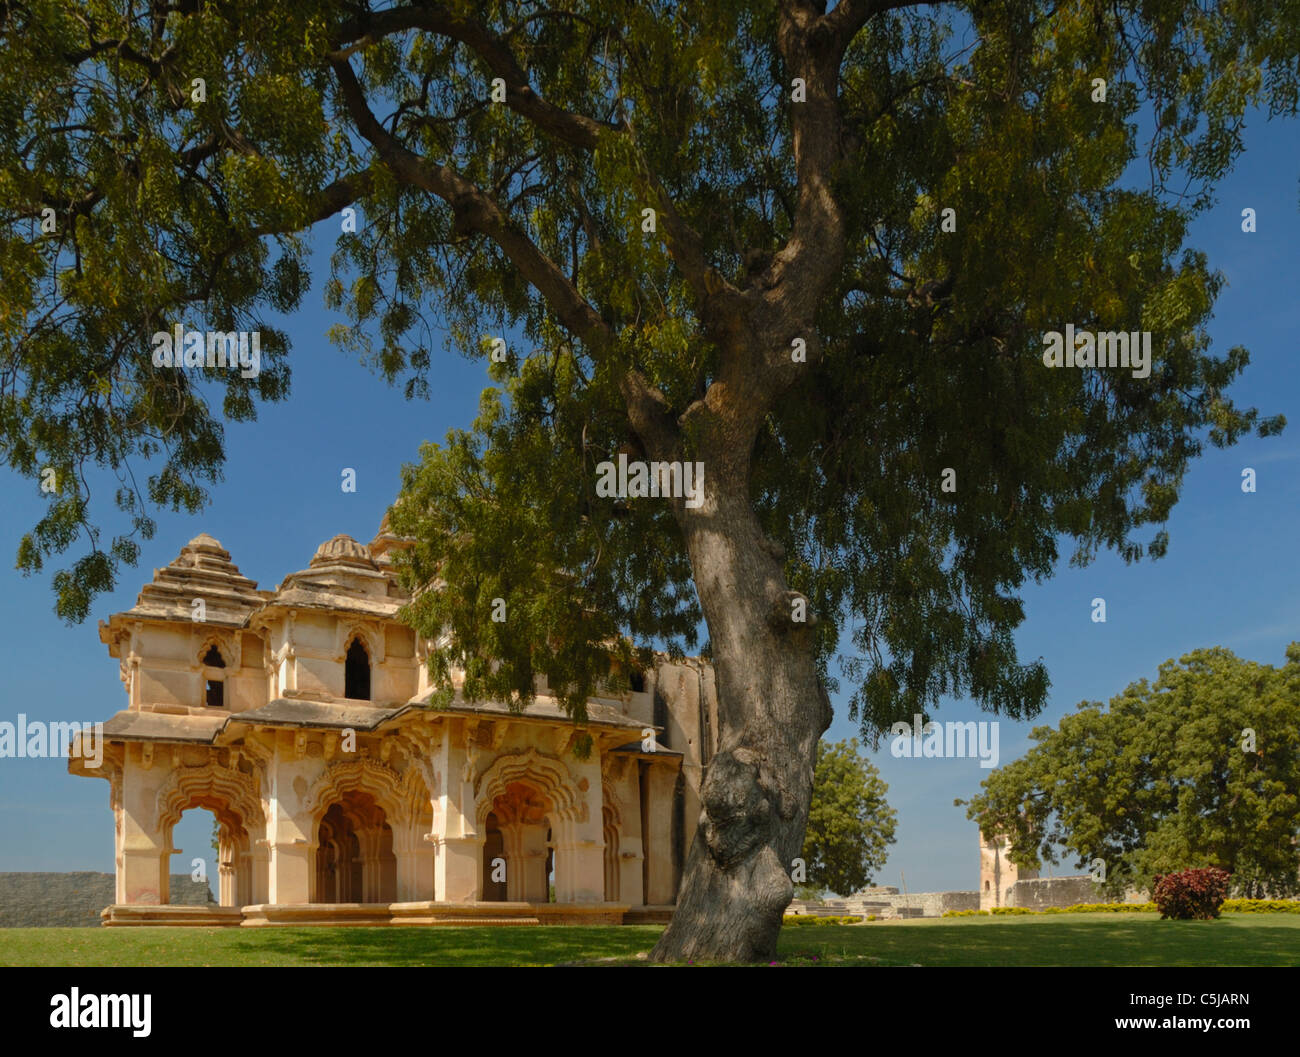 The two storeyed Lotus Mahal with recessed archways is one of the major attractions within the World Heritage Site - Stock Image